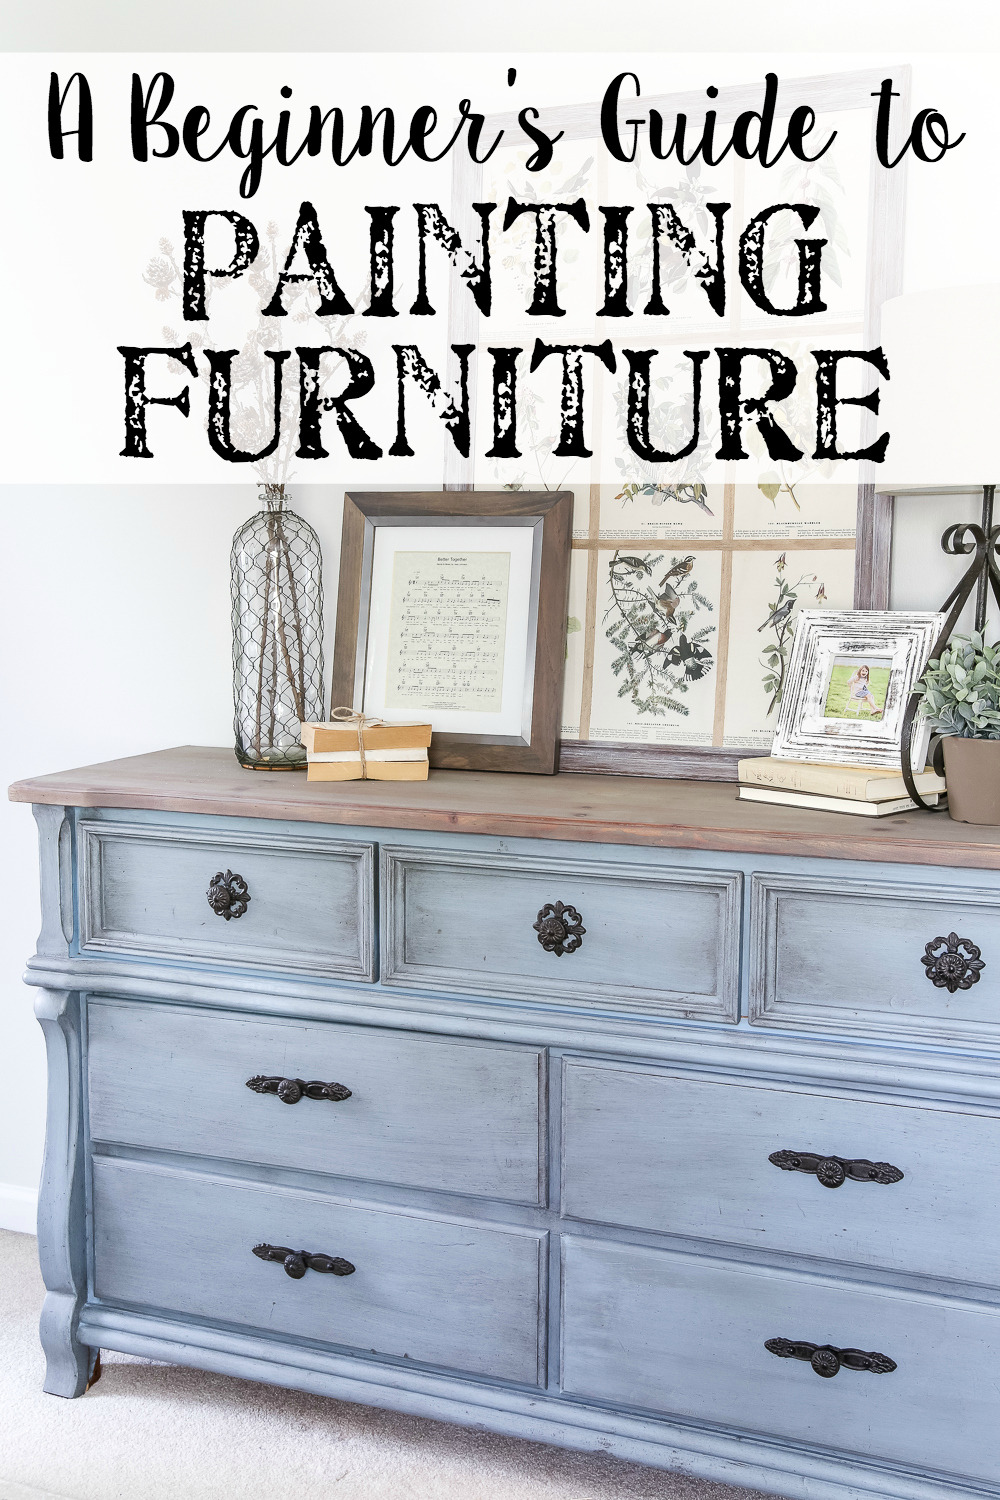 How to Paint Wooden Furniture Antique White Inspirational Beginner S Guide to Painting Furniture Bless Er House